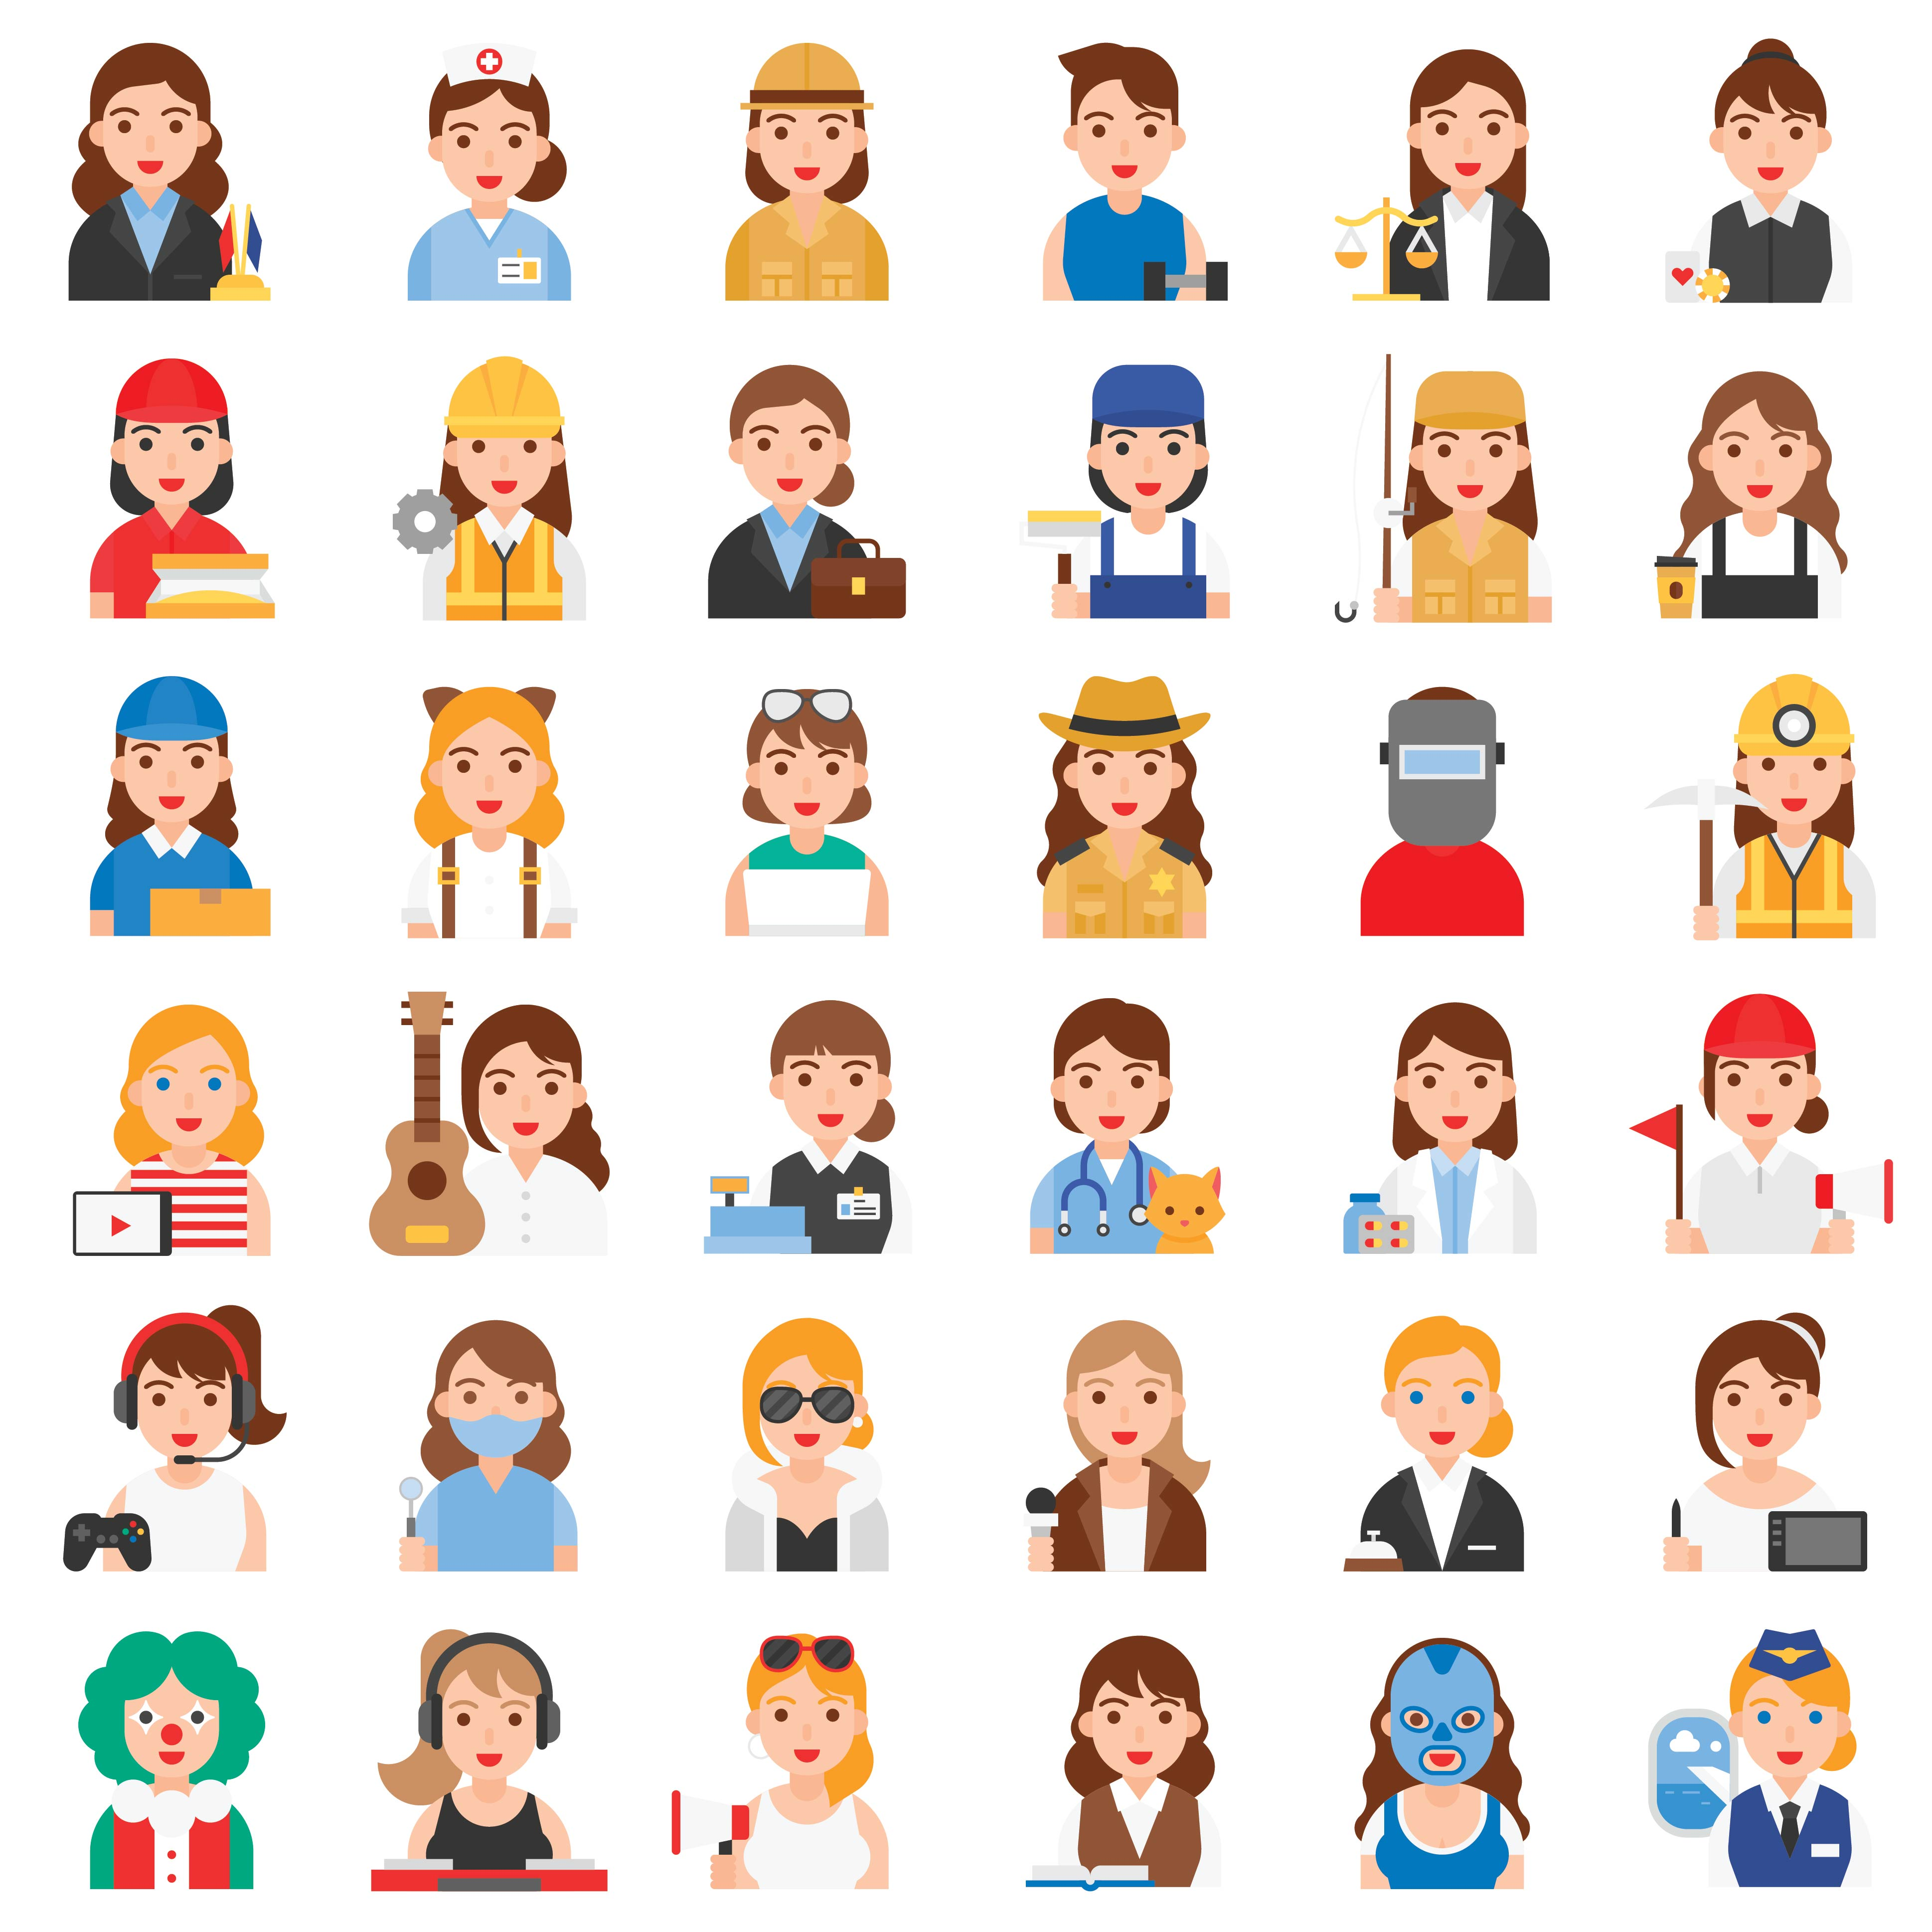 Female Profession and job related icon set